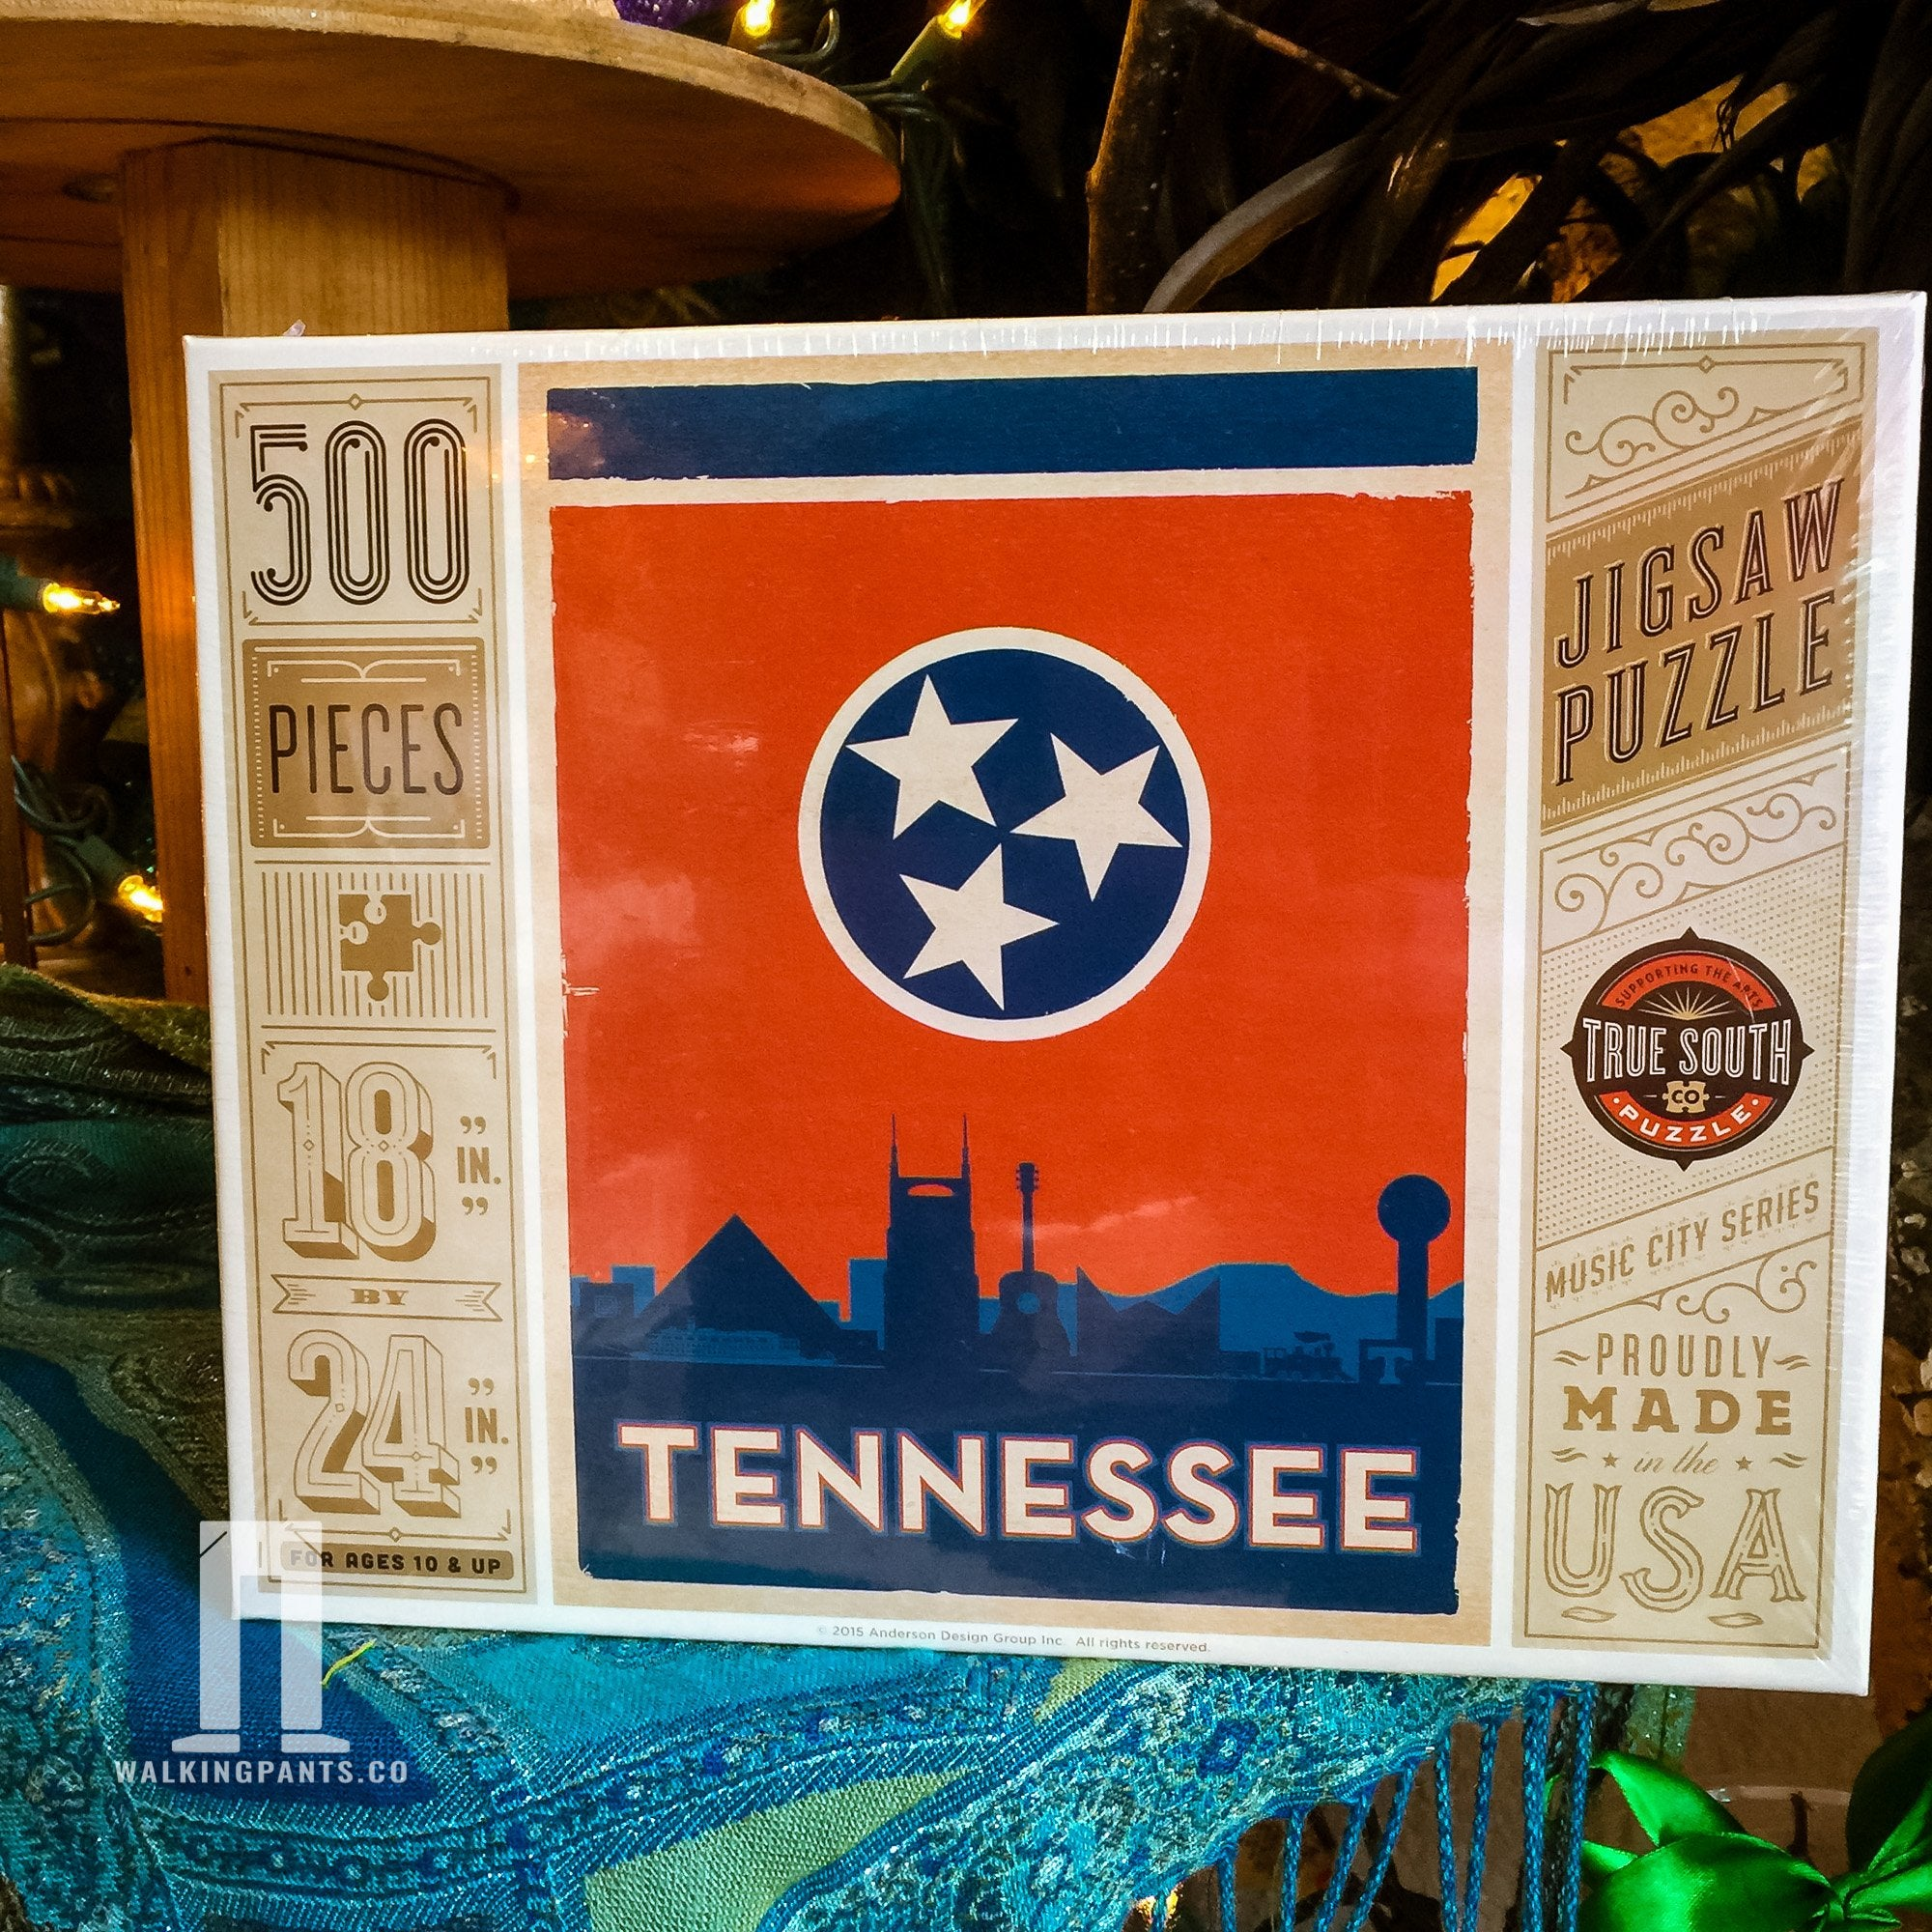 Buy Tennessee State Flag, 500 Piece Jigsaw Puzzle from Walking Pants Curiosities, the Most un-General Gift Store in Downtown Memphis, Tennessee!